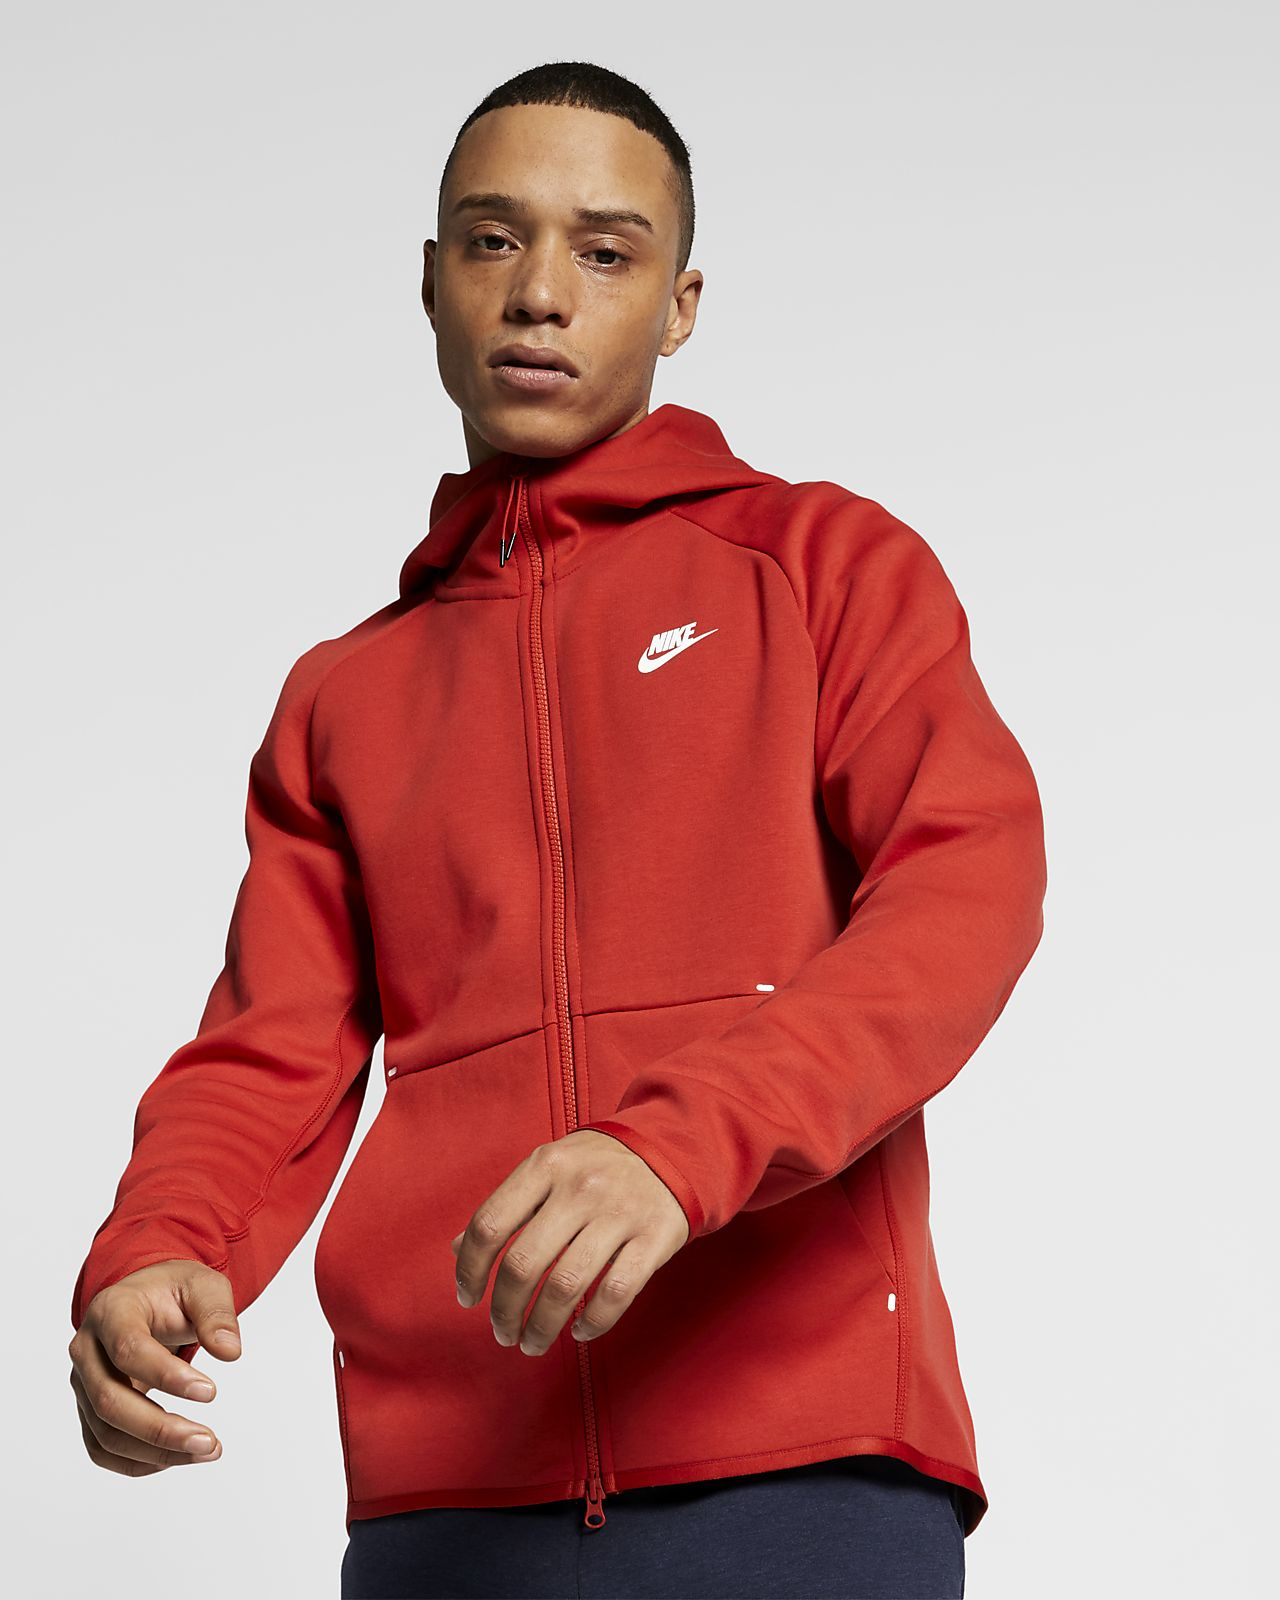 e74decc12e Nike Sportswear Tech Fleece Men's Full-Zip Hoodie. Nike.com